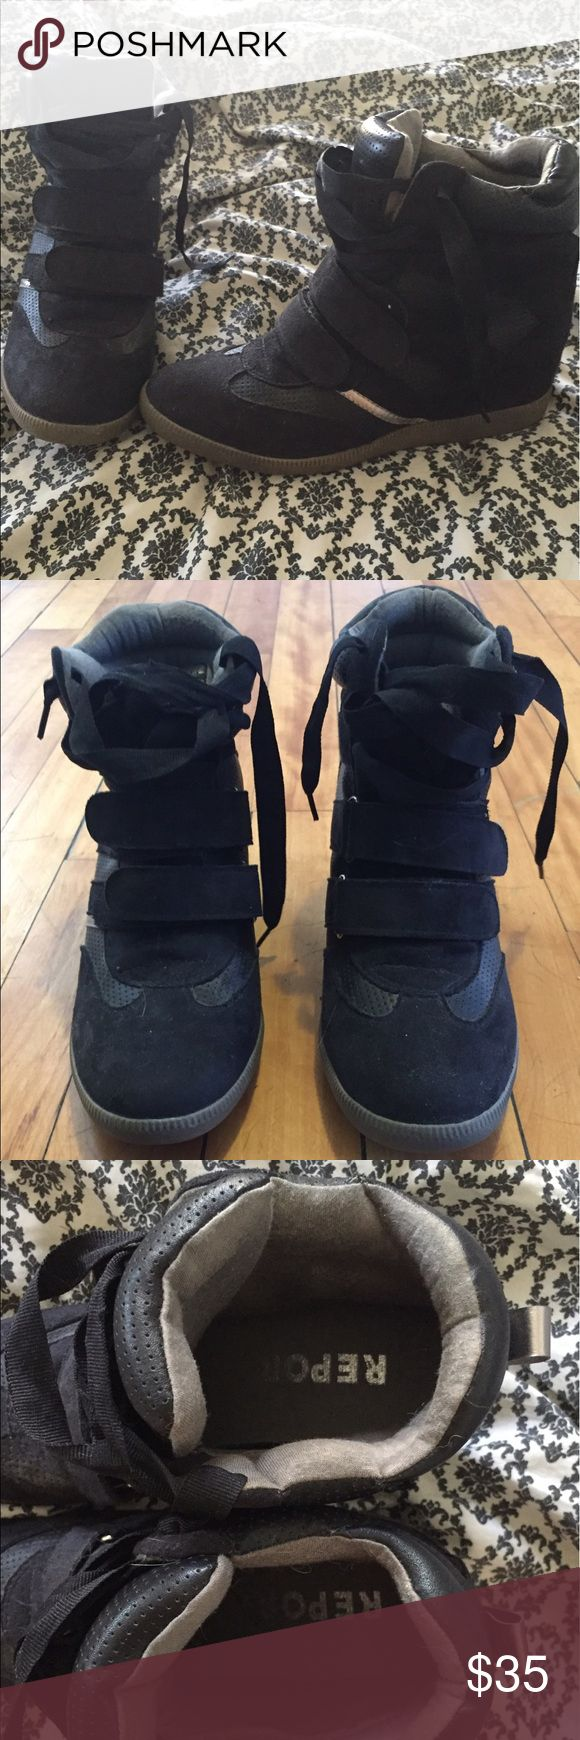 Black high top wedge heel sneakers Black high top sneakers with hidden wedge heel.  Lace and Velcro tie up detail.  Never worn out. Report Shoes